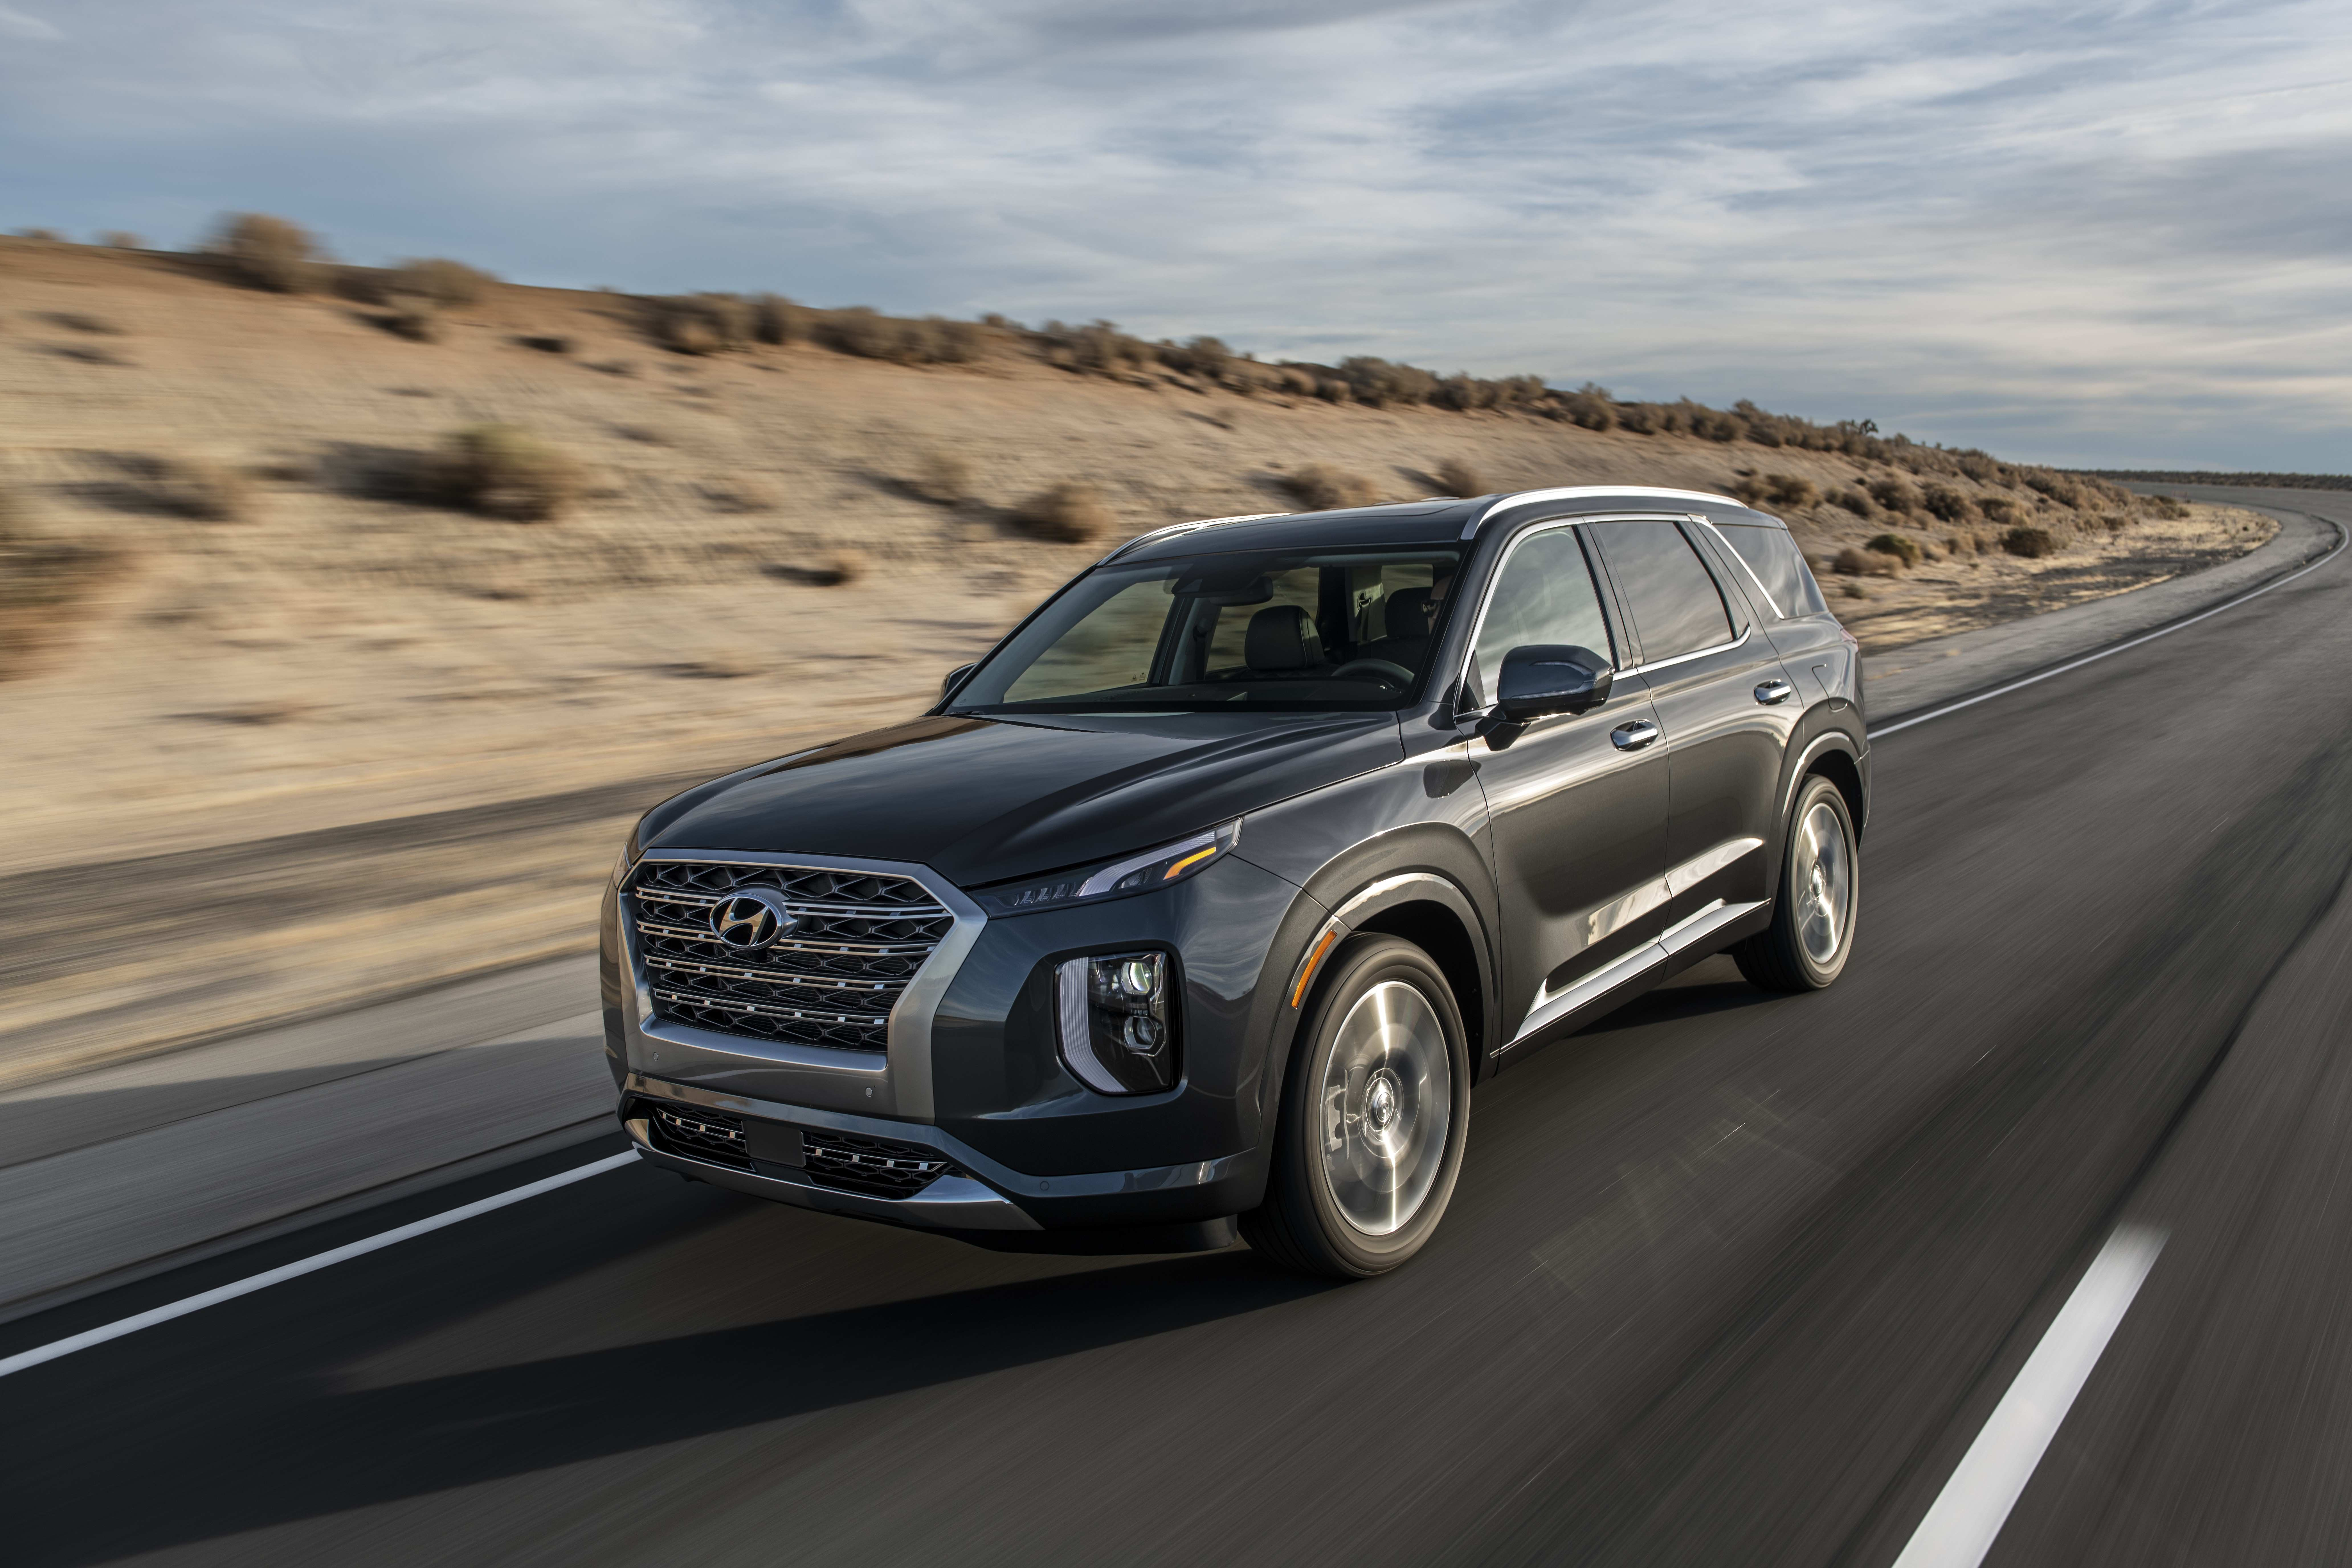 29 Best Review Hyundai Full Size Suv 2020 Concept by Hyundai Full Size Suv 2020